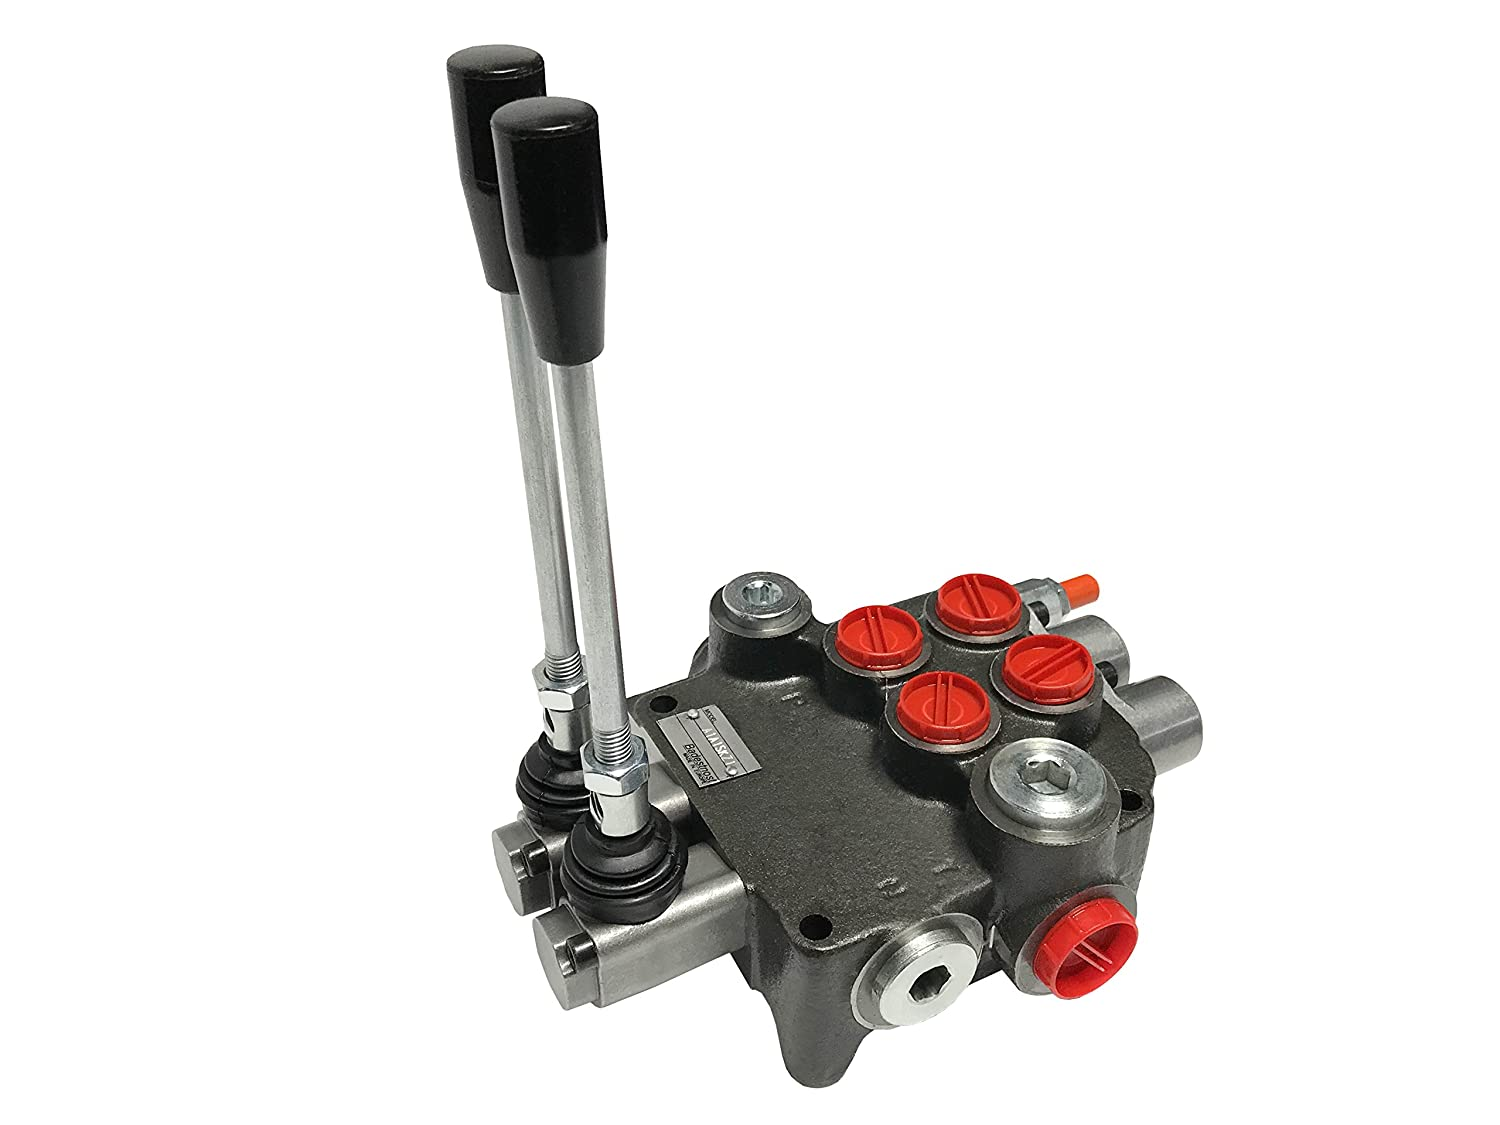 Magister Hydraulic Directional Control Valve 13 GPM with 2 Spools Monoblock 4-Way Tandem Center